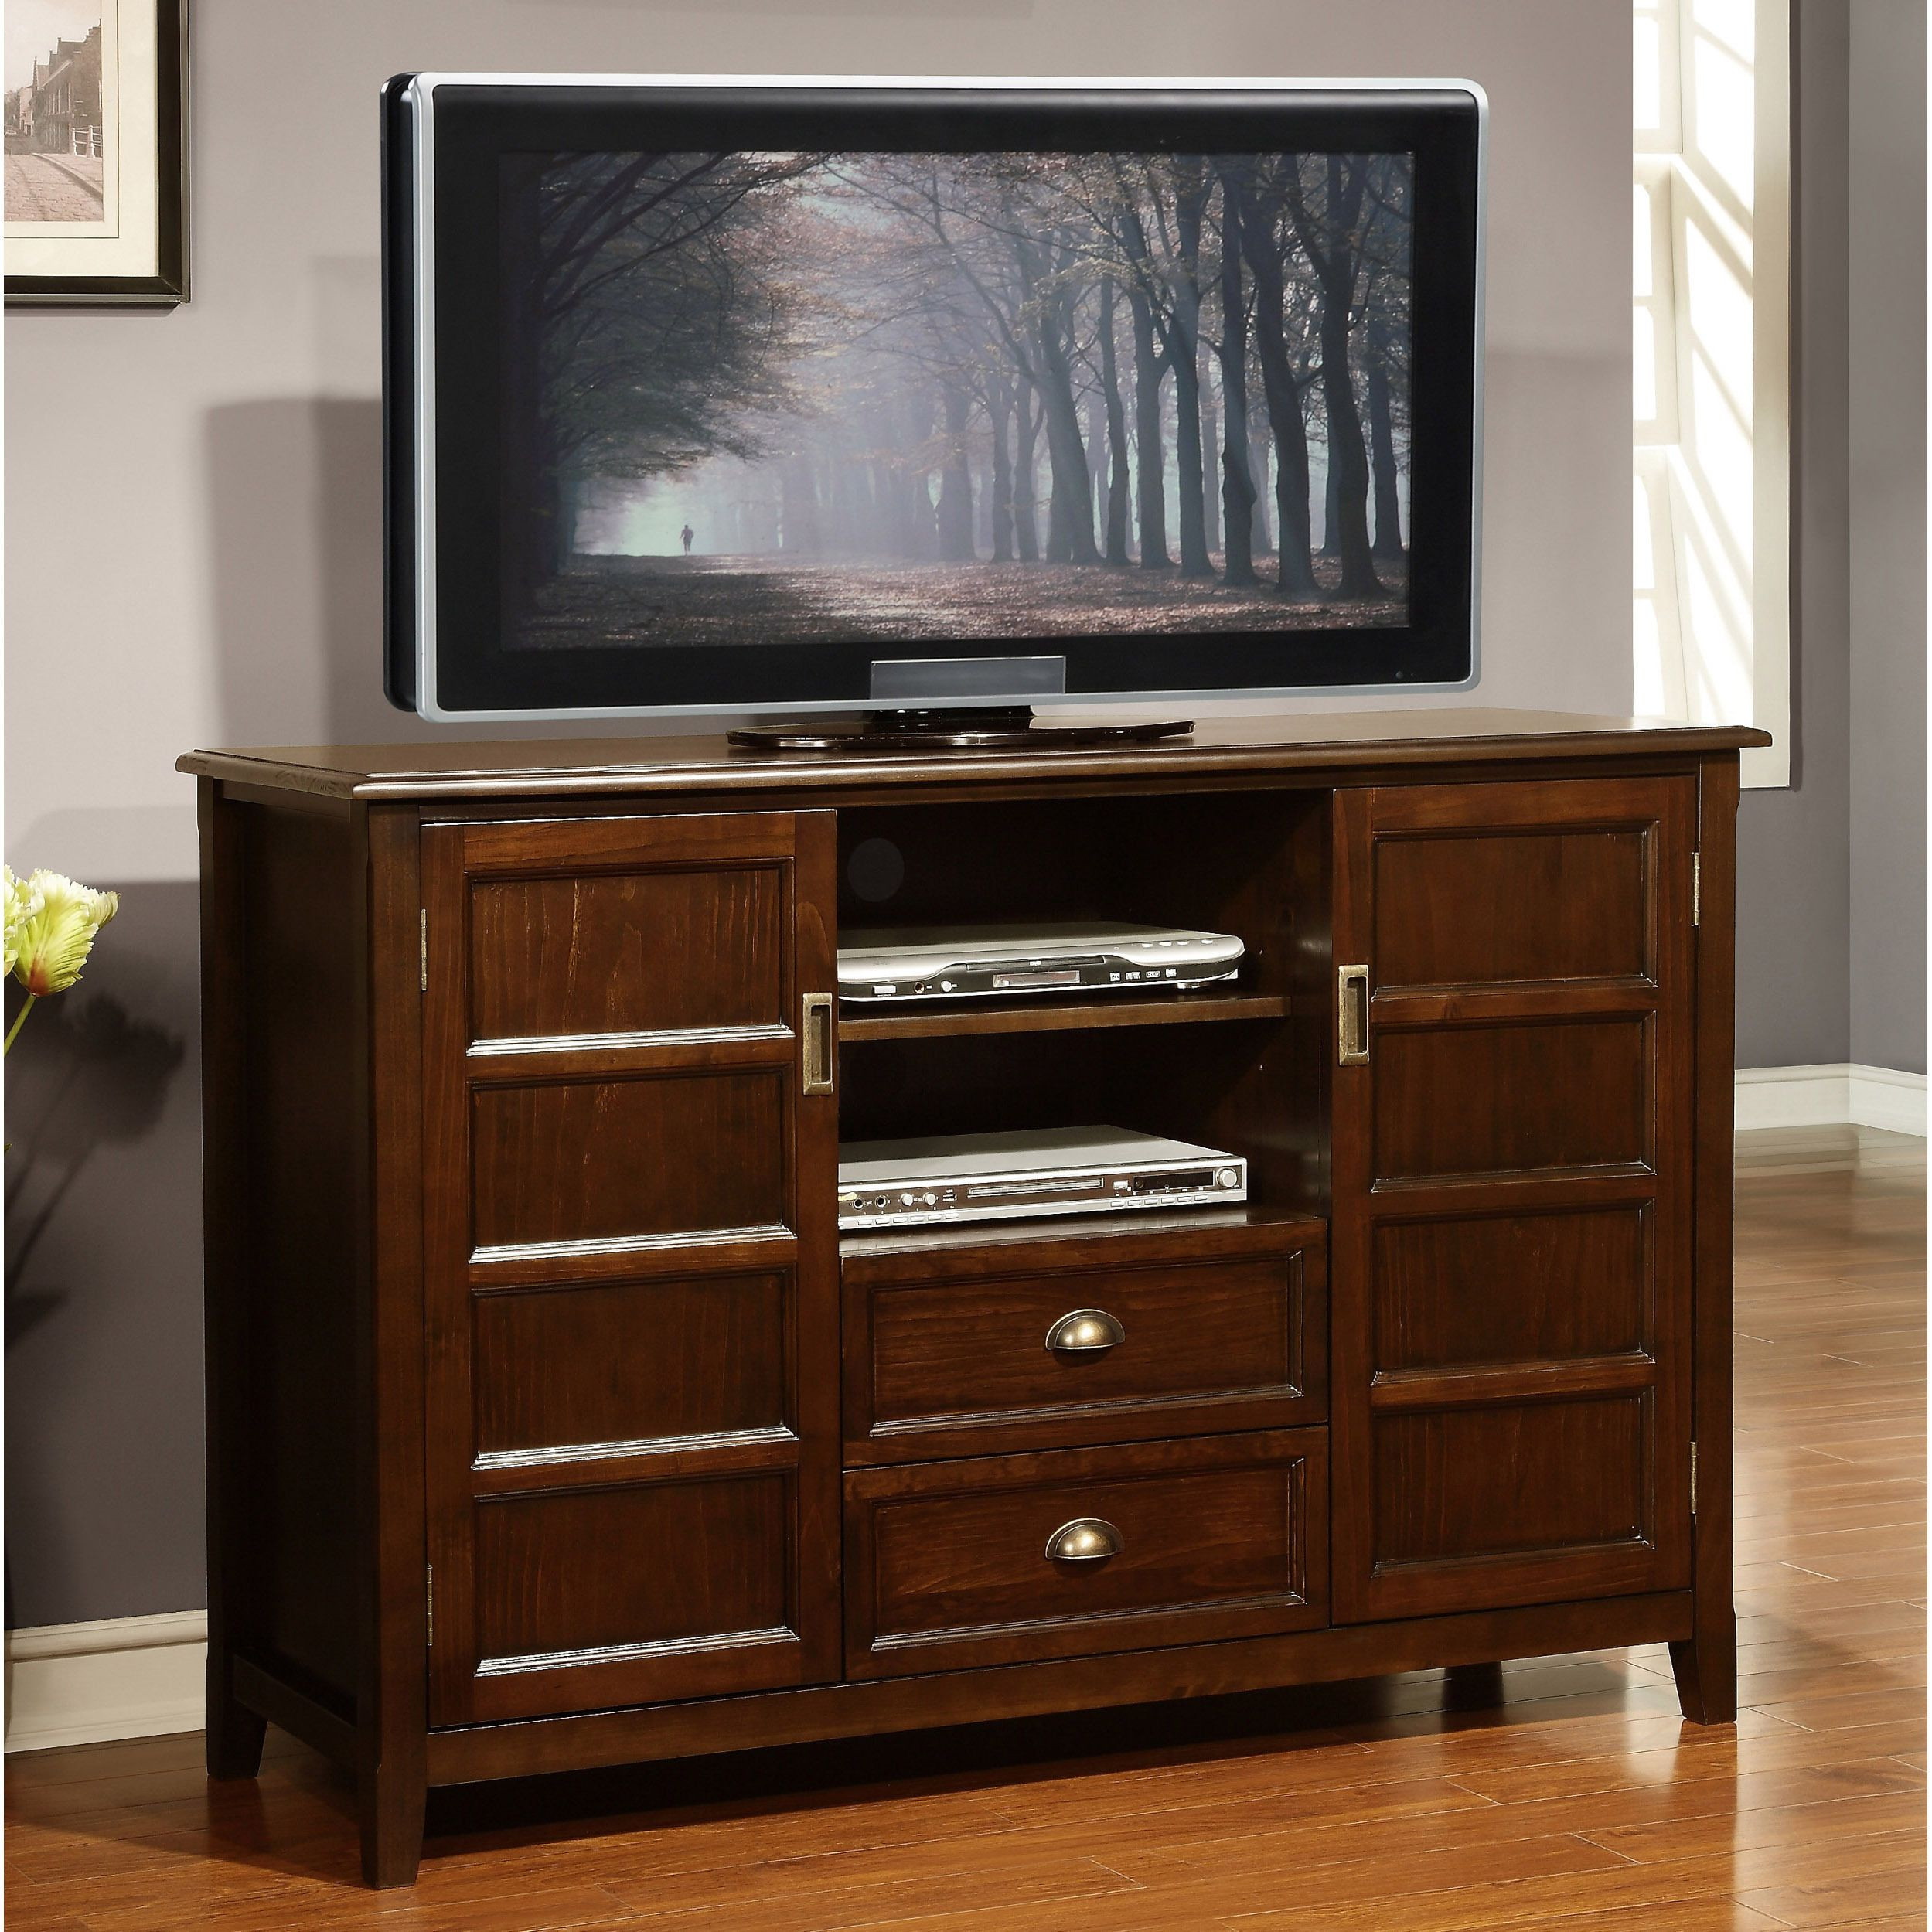 Portland Collection Espresso Brown Tall TV Stand   Overstock.com ...